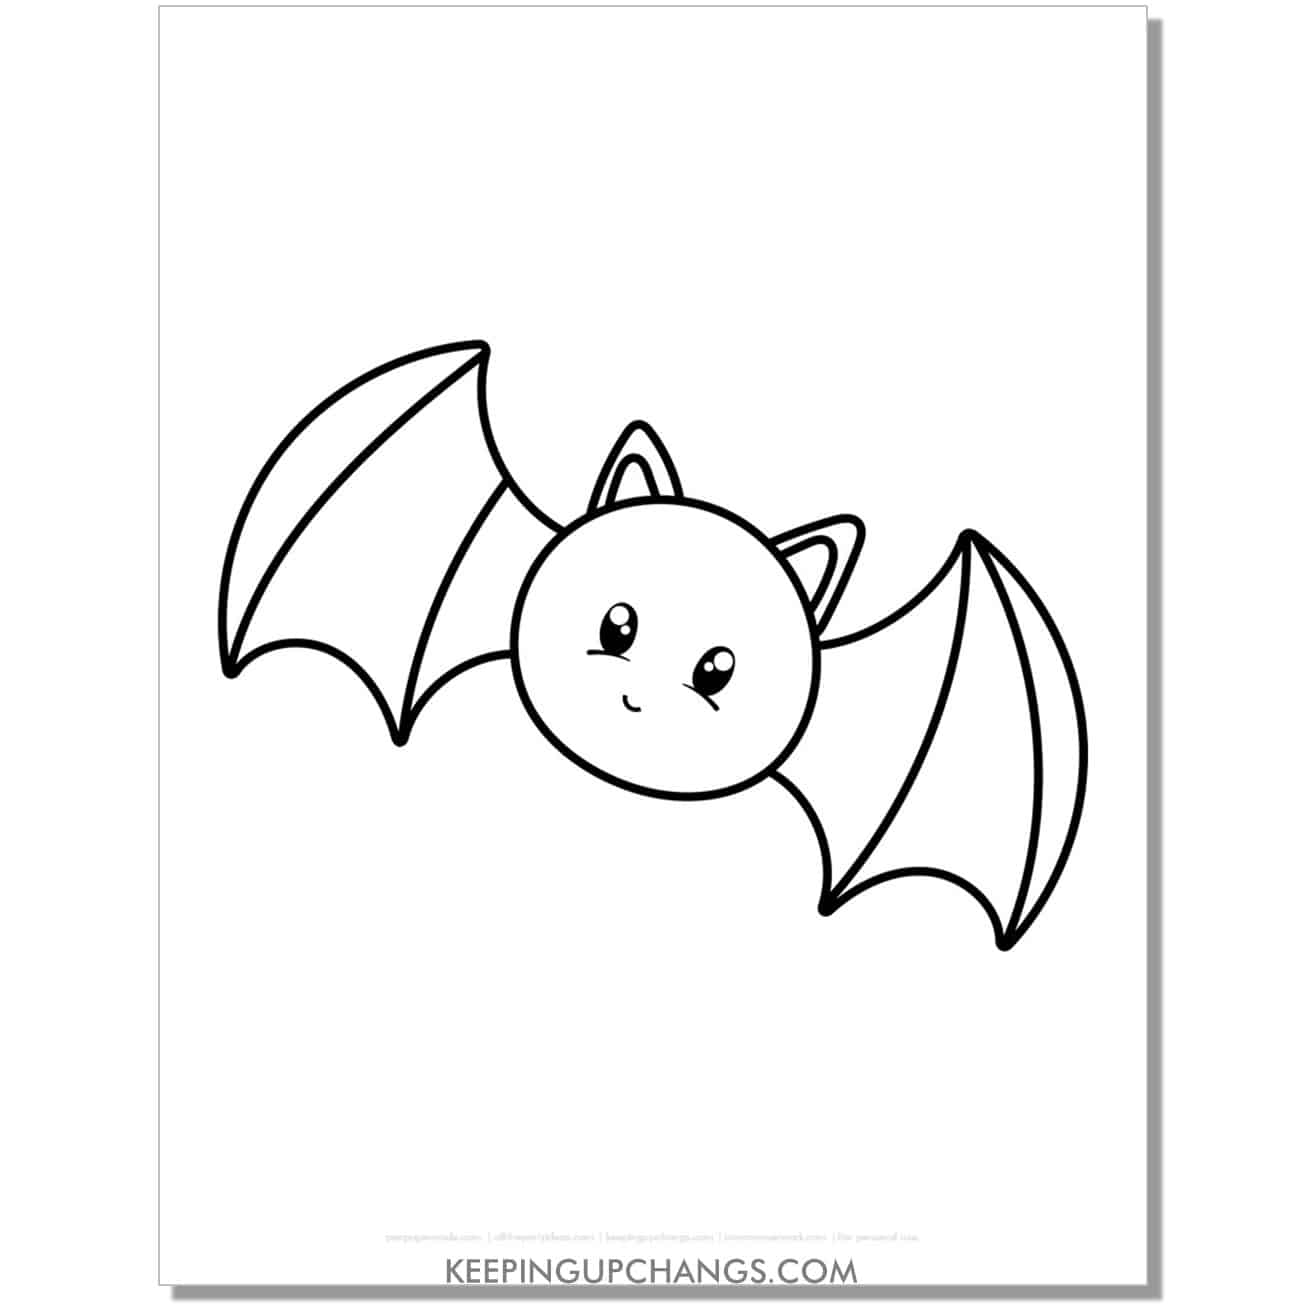 free cute bat halloween coloring page for kids.